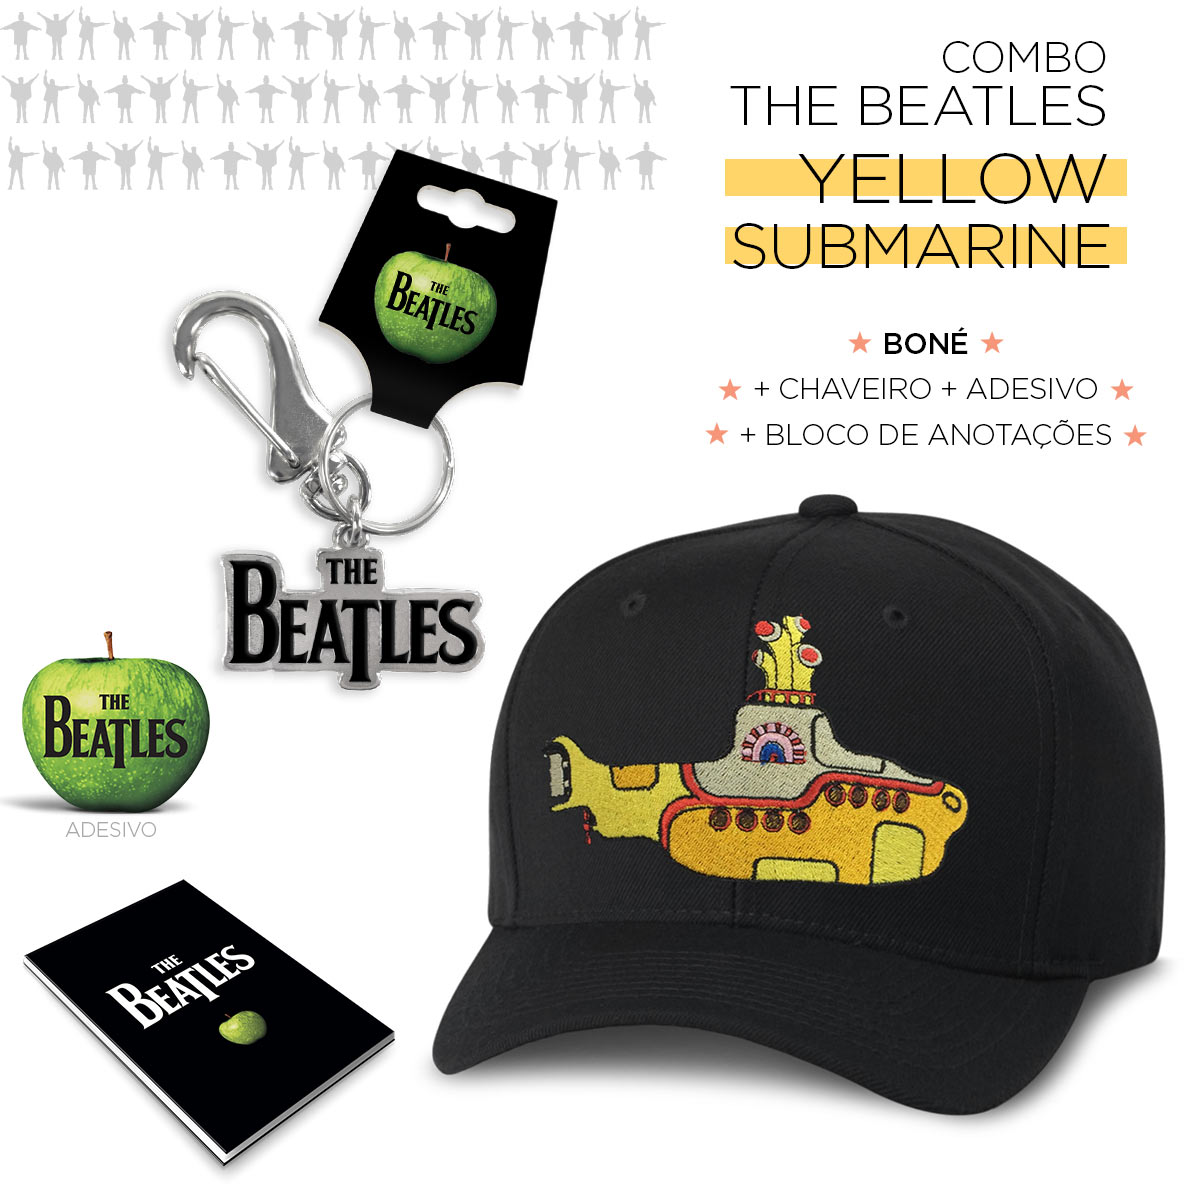 Super Combo The Beatles Yellow Submarine